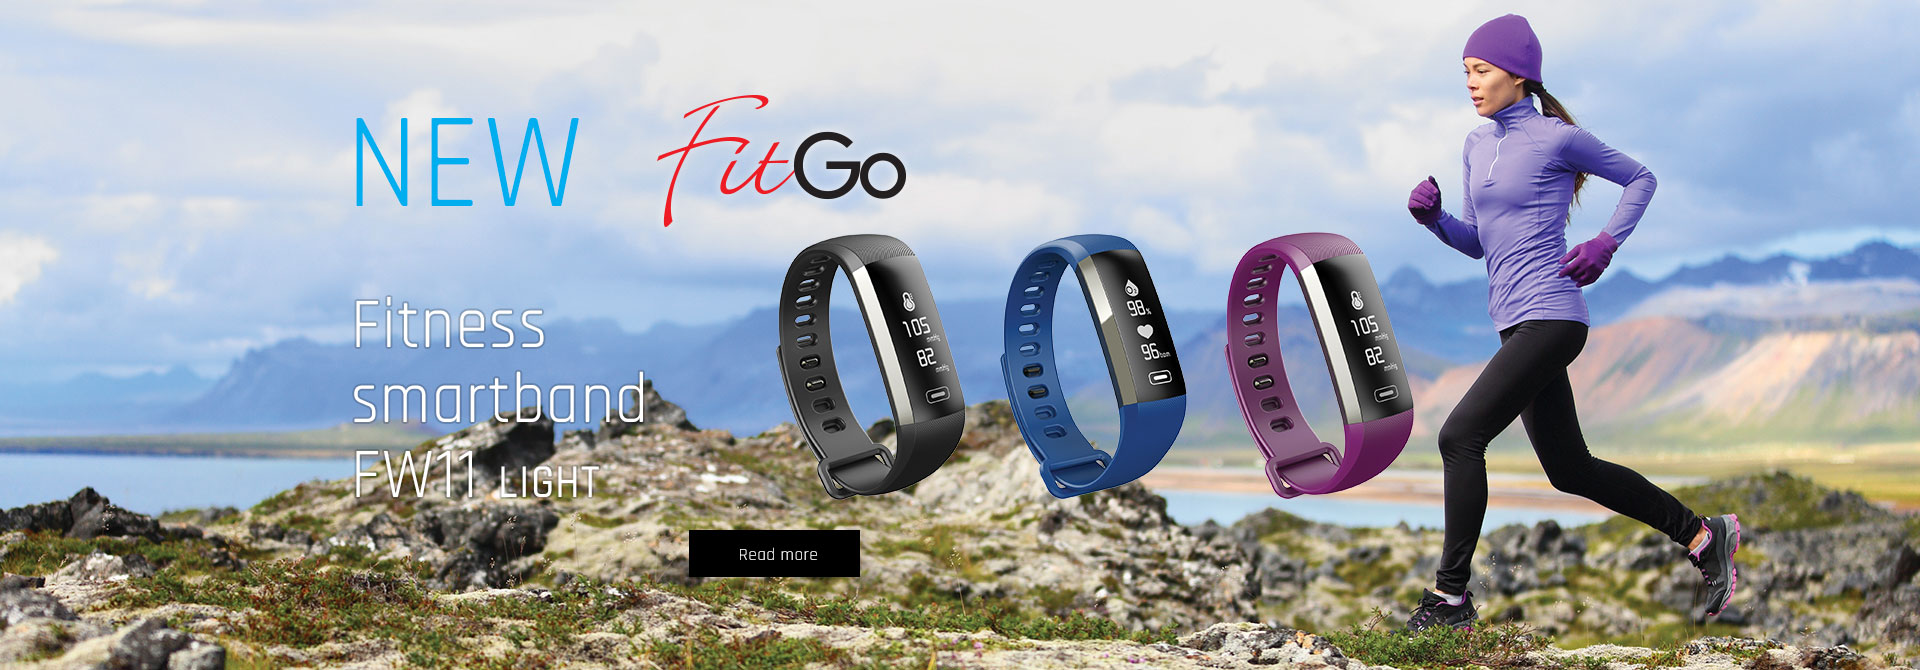 Fitgo Smartband FW11 Light